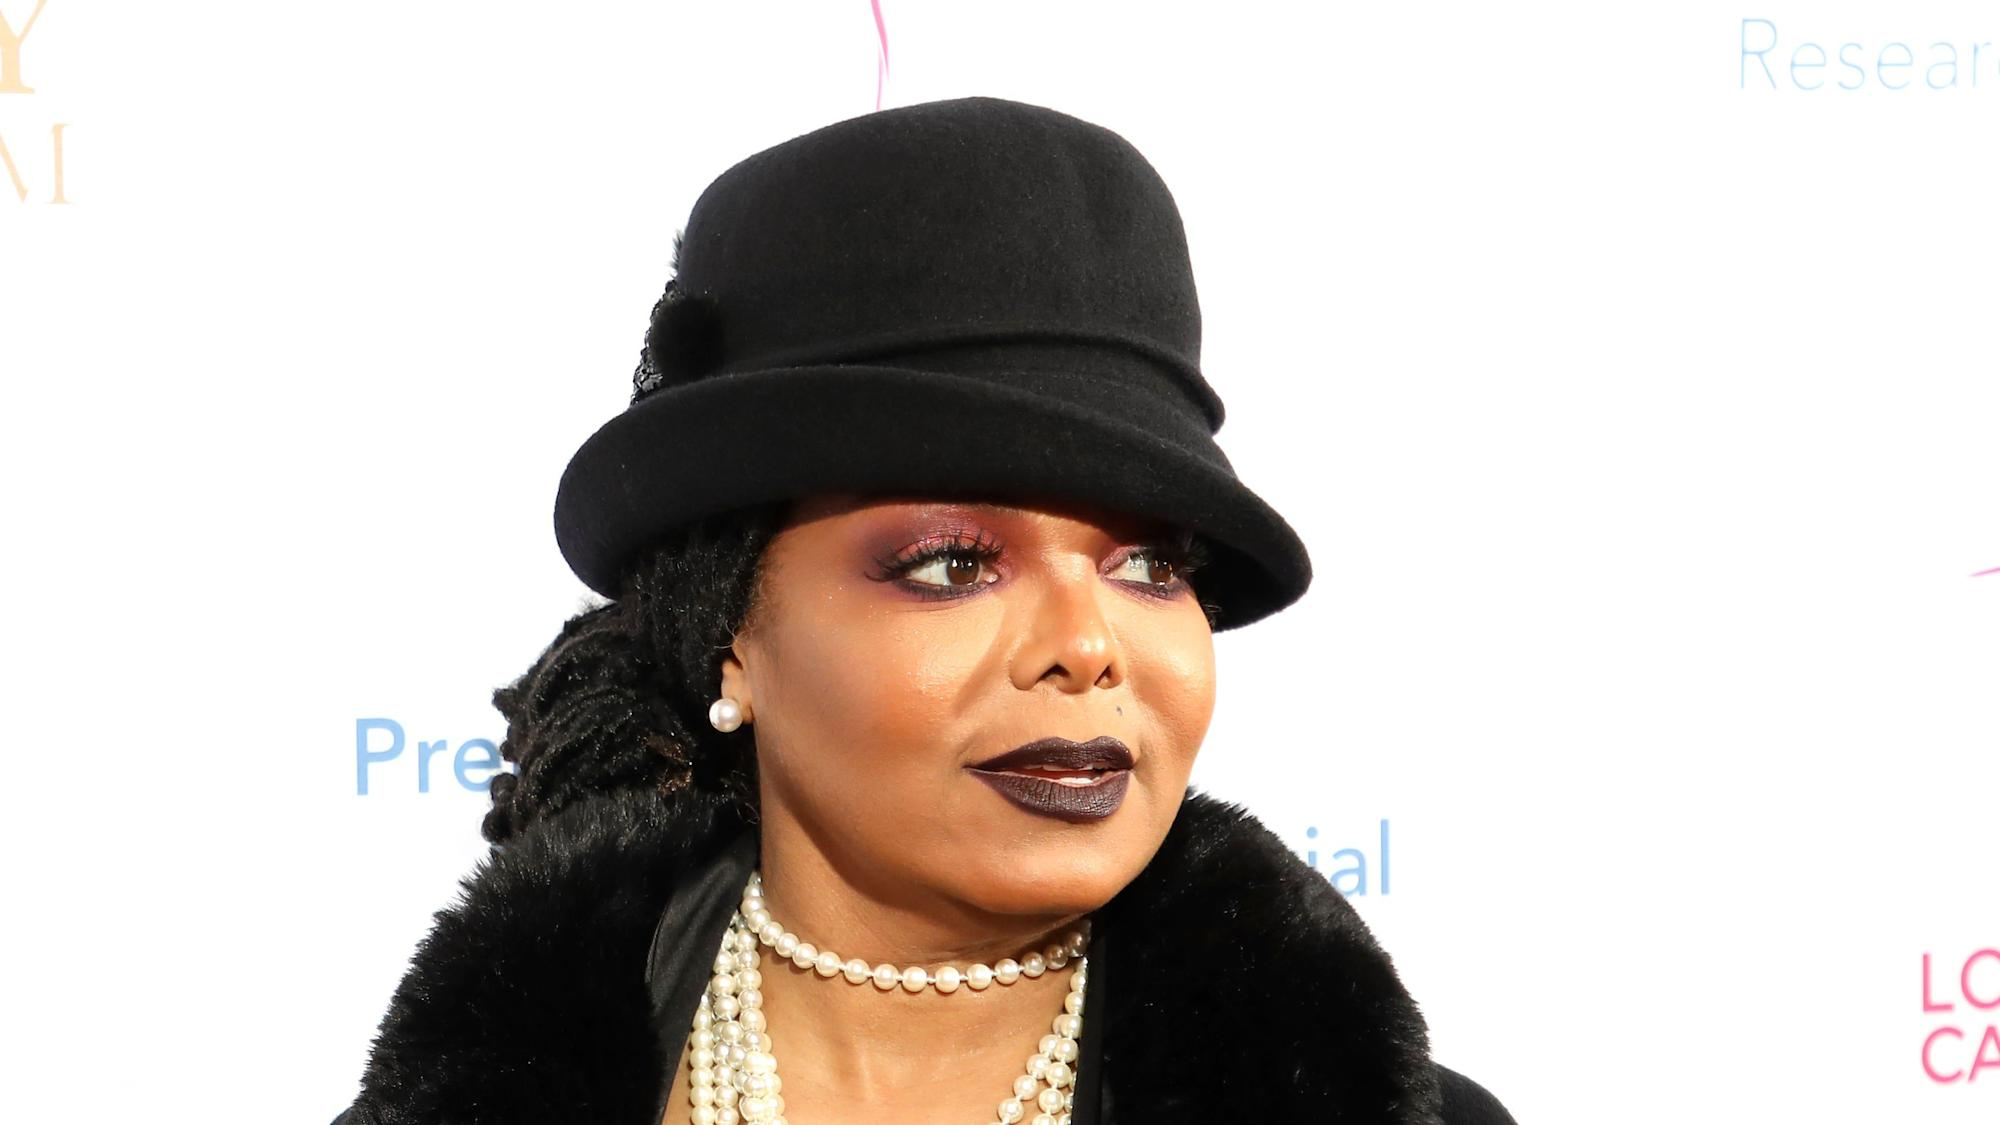 Janet Jackson documentary in the works with 'no subject off limits'